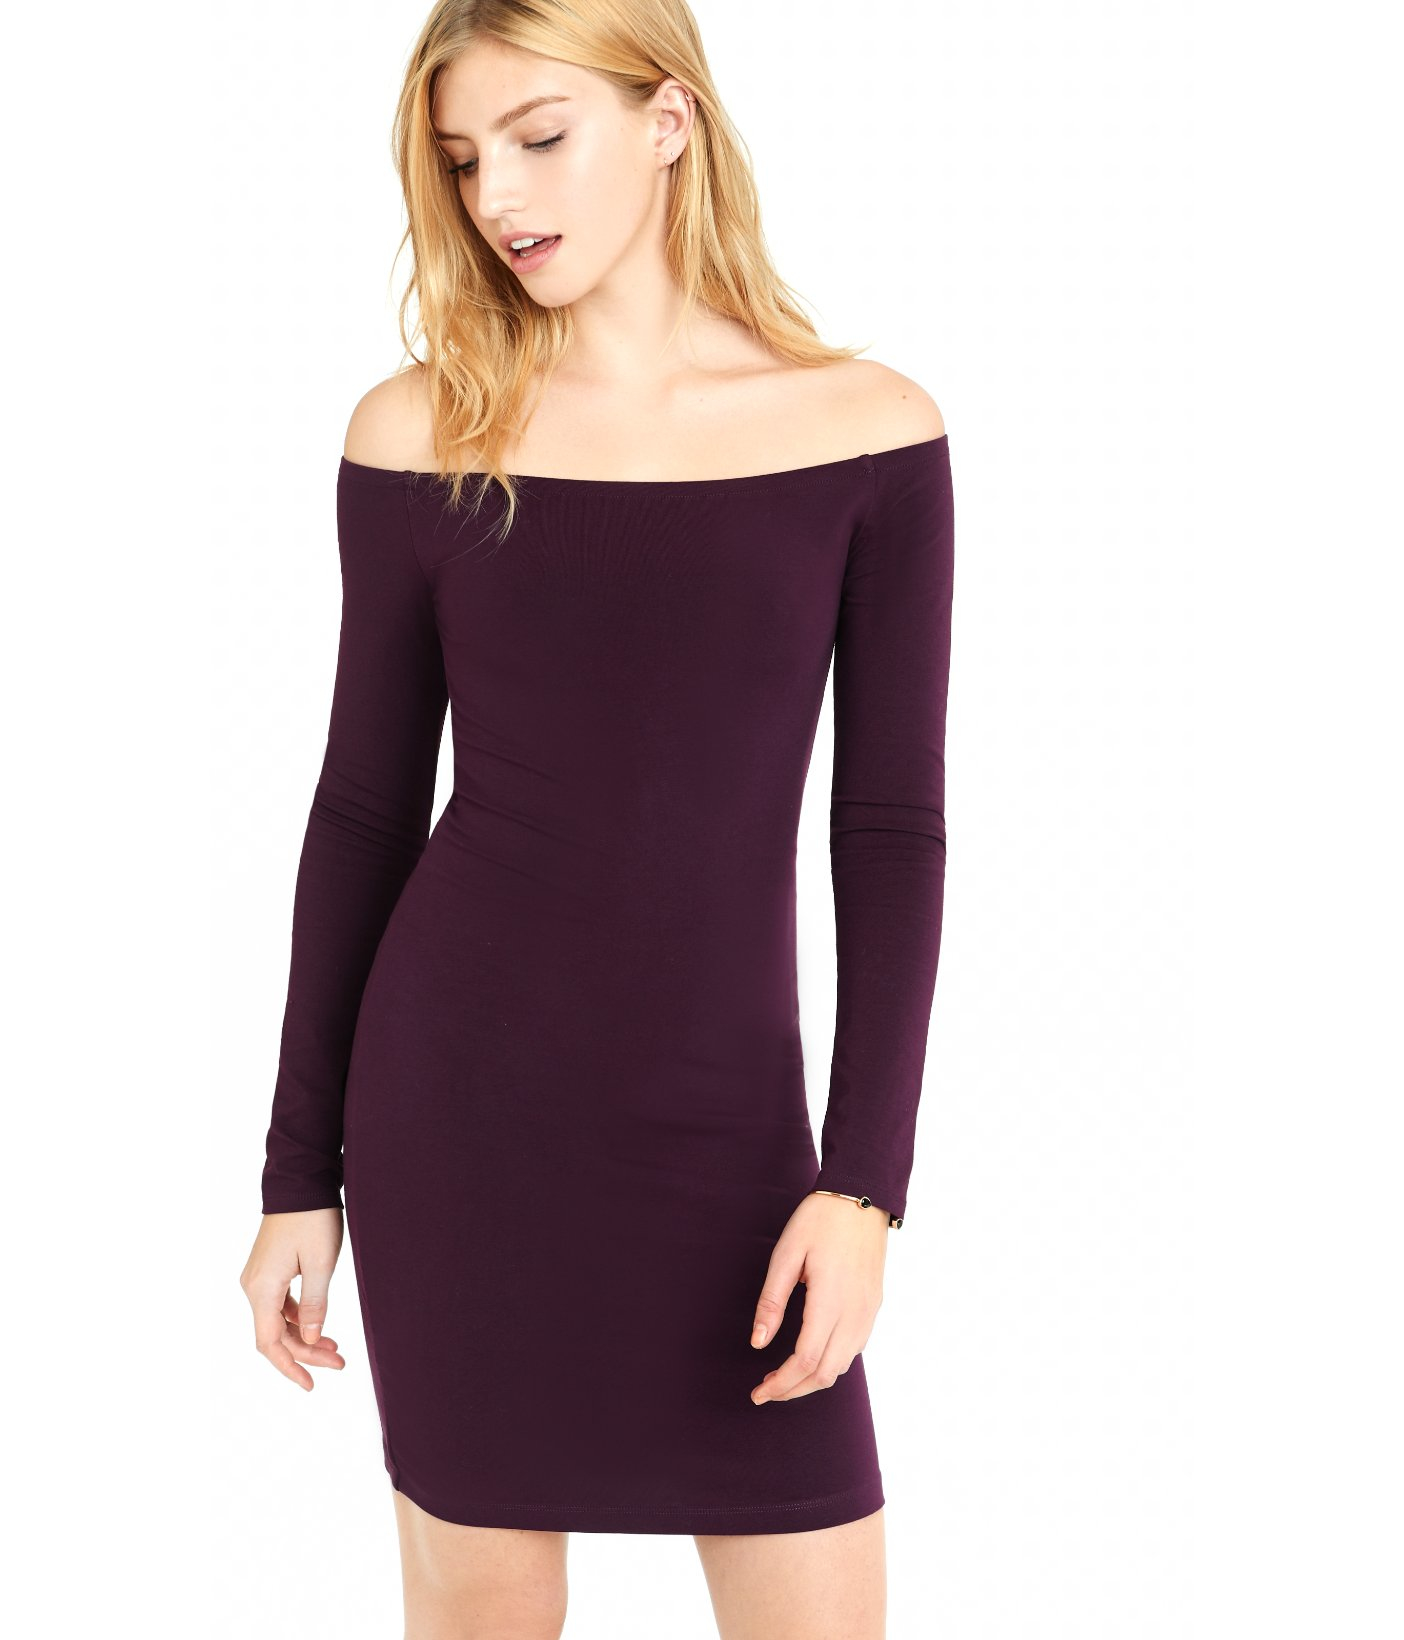 The dress express - Gallery